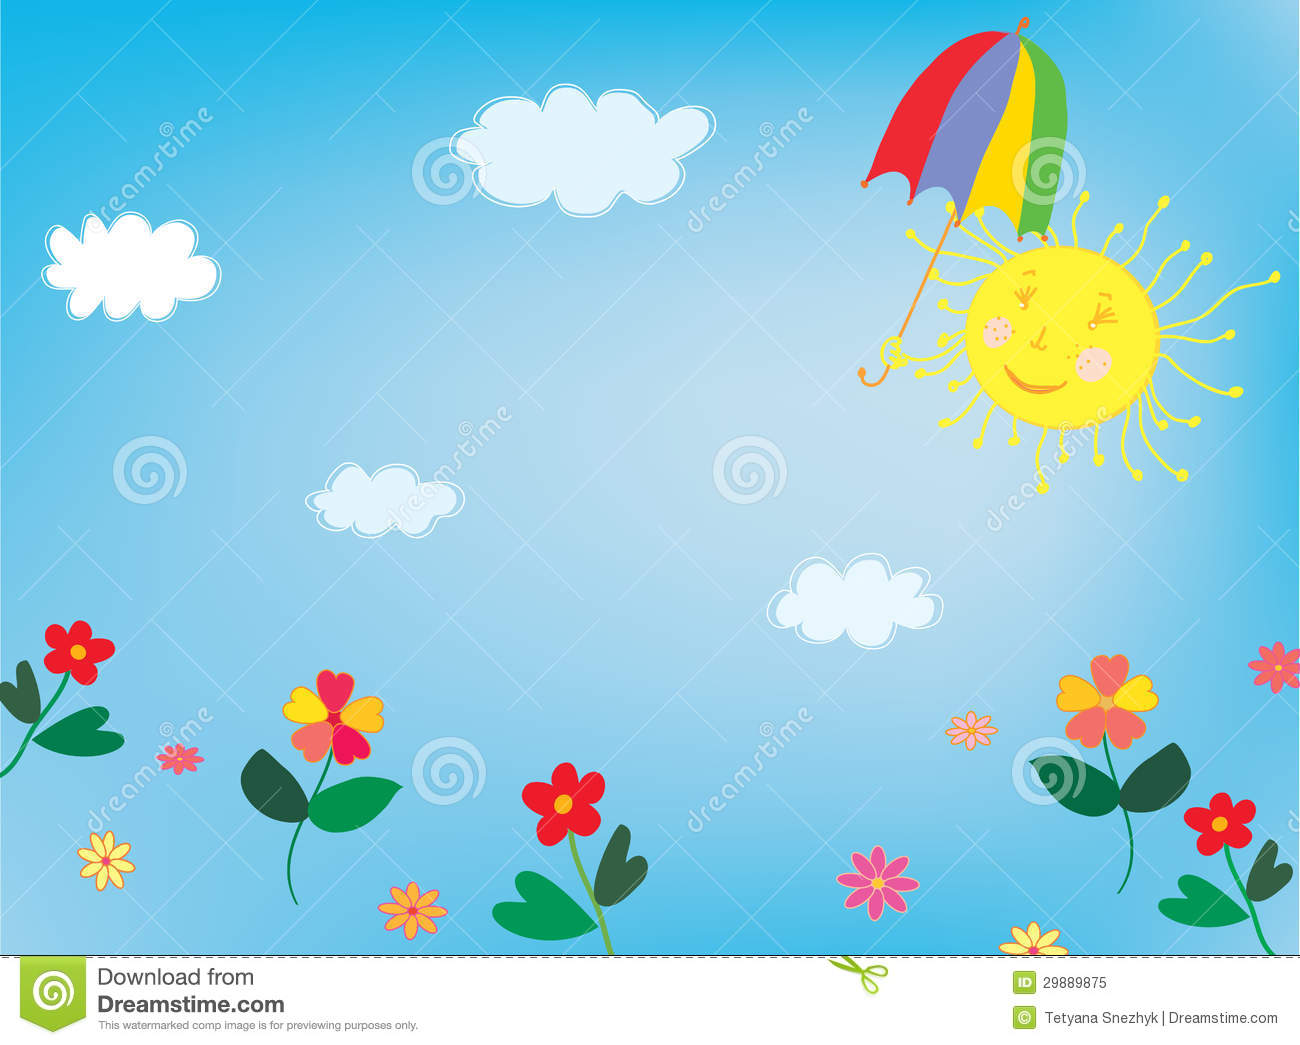 Cute Toddlers Playing Cartoon Wallpaper Sun And Sky Background For Children Royalty Free Stock